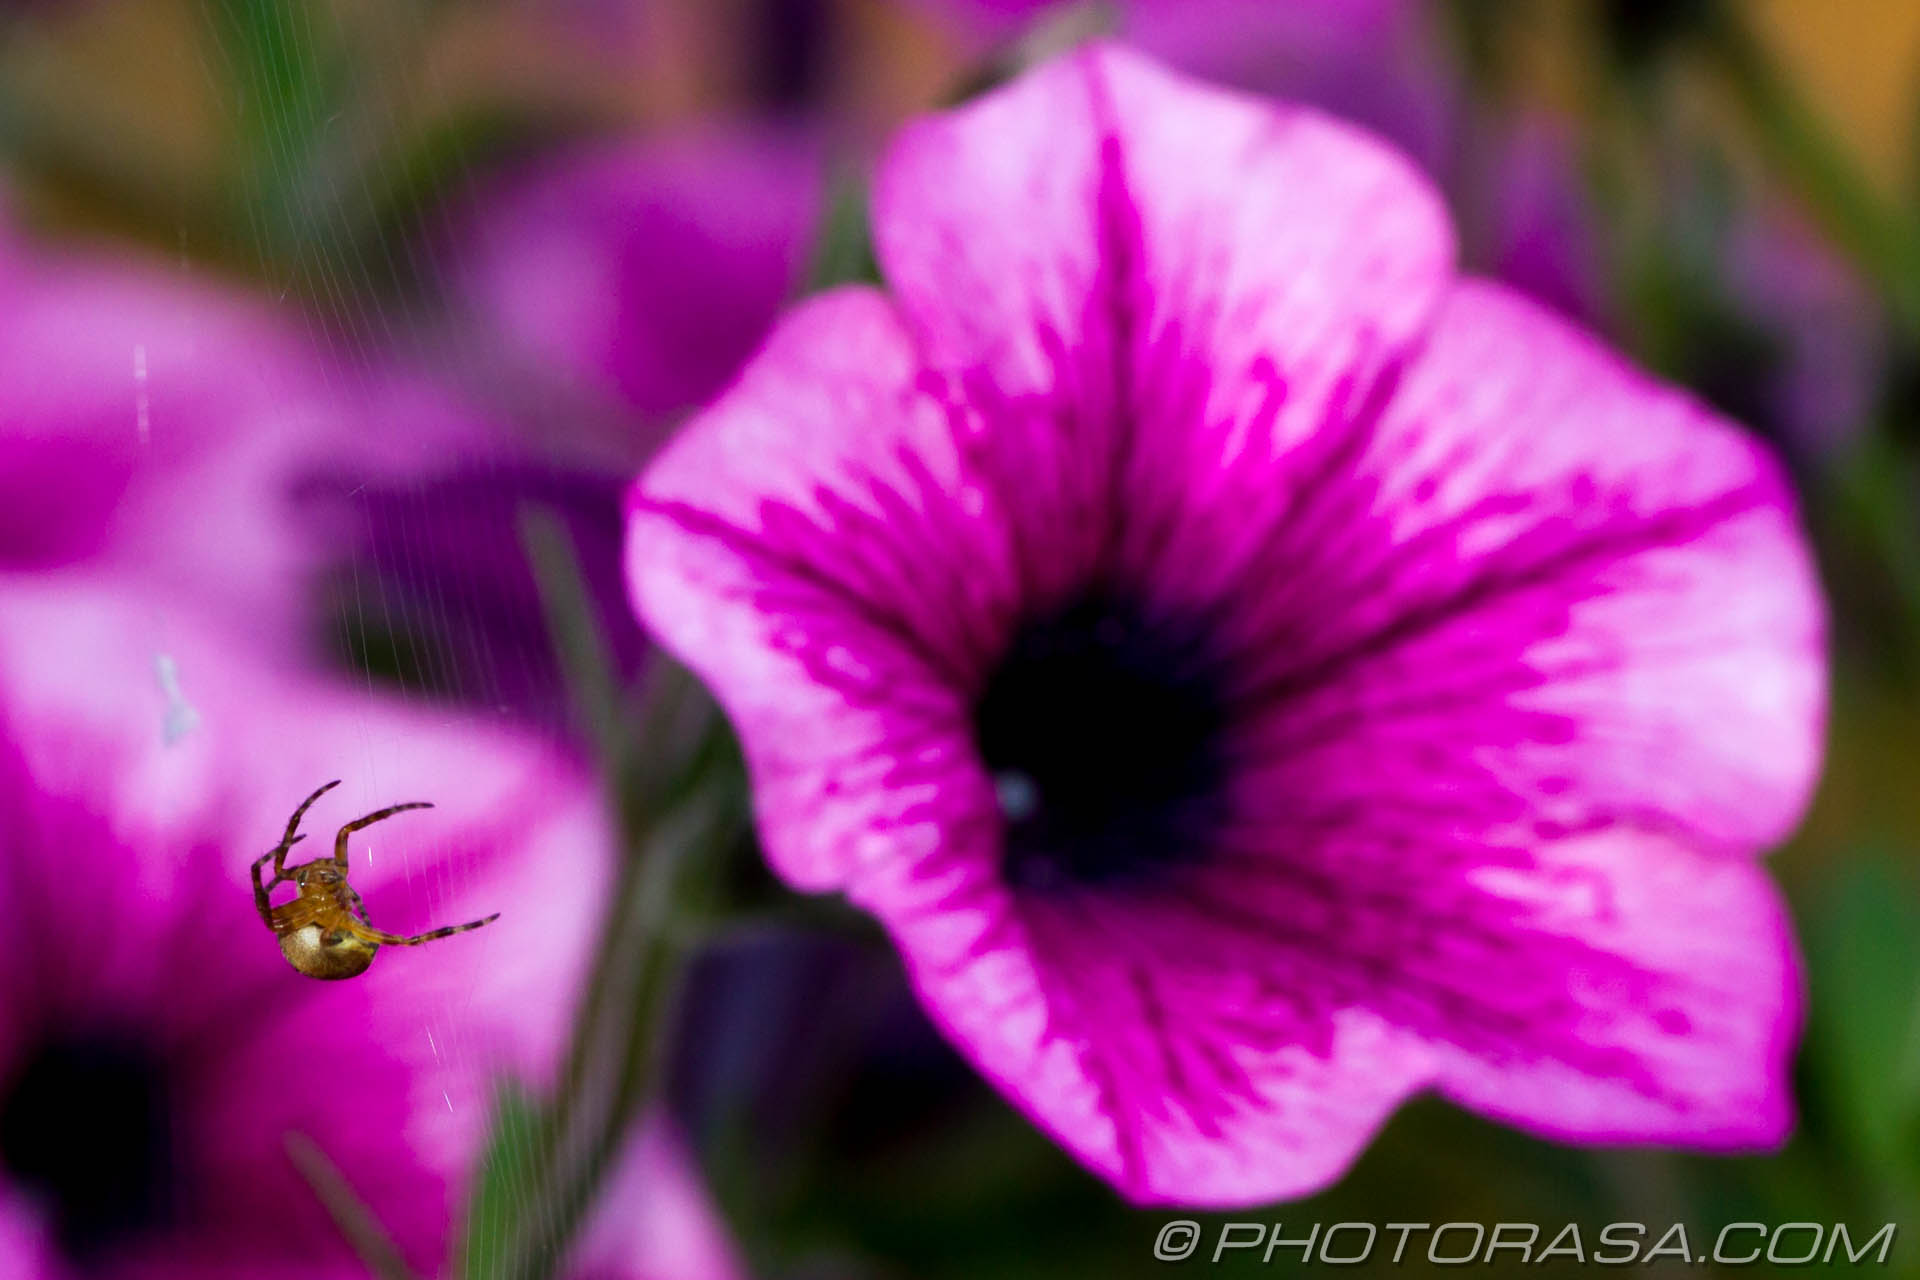 https://photorasa.com/spider-petunias/spider-and-flower/